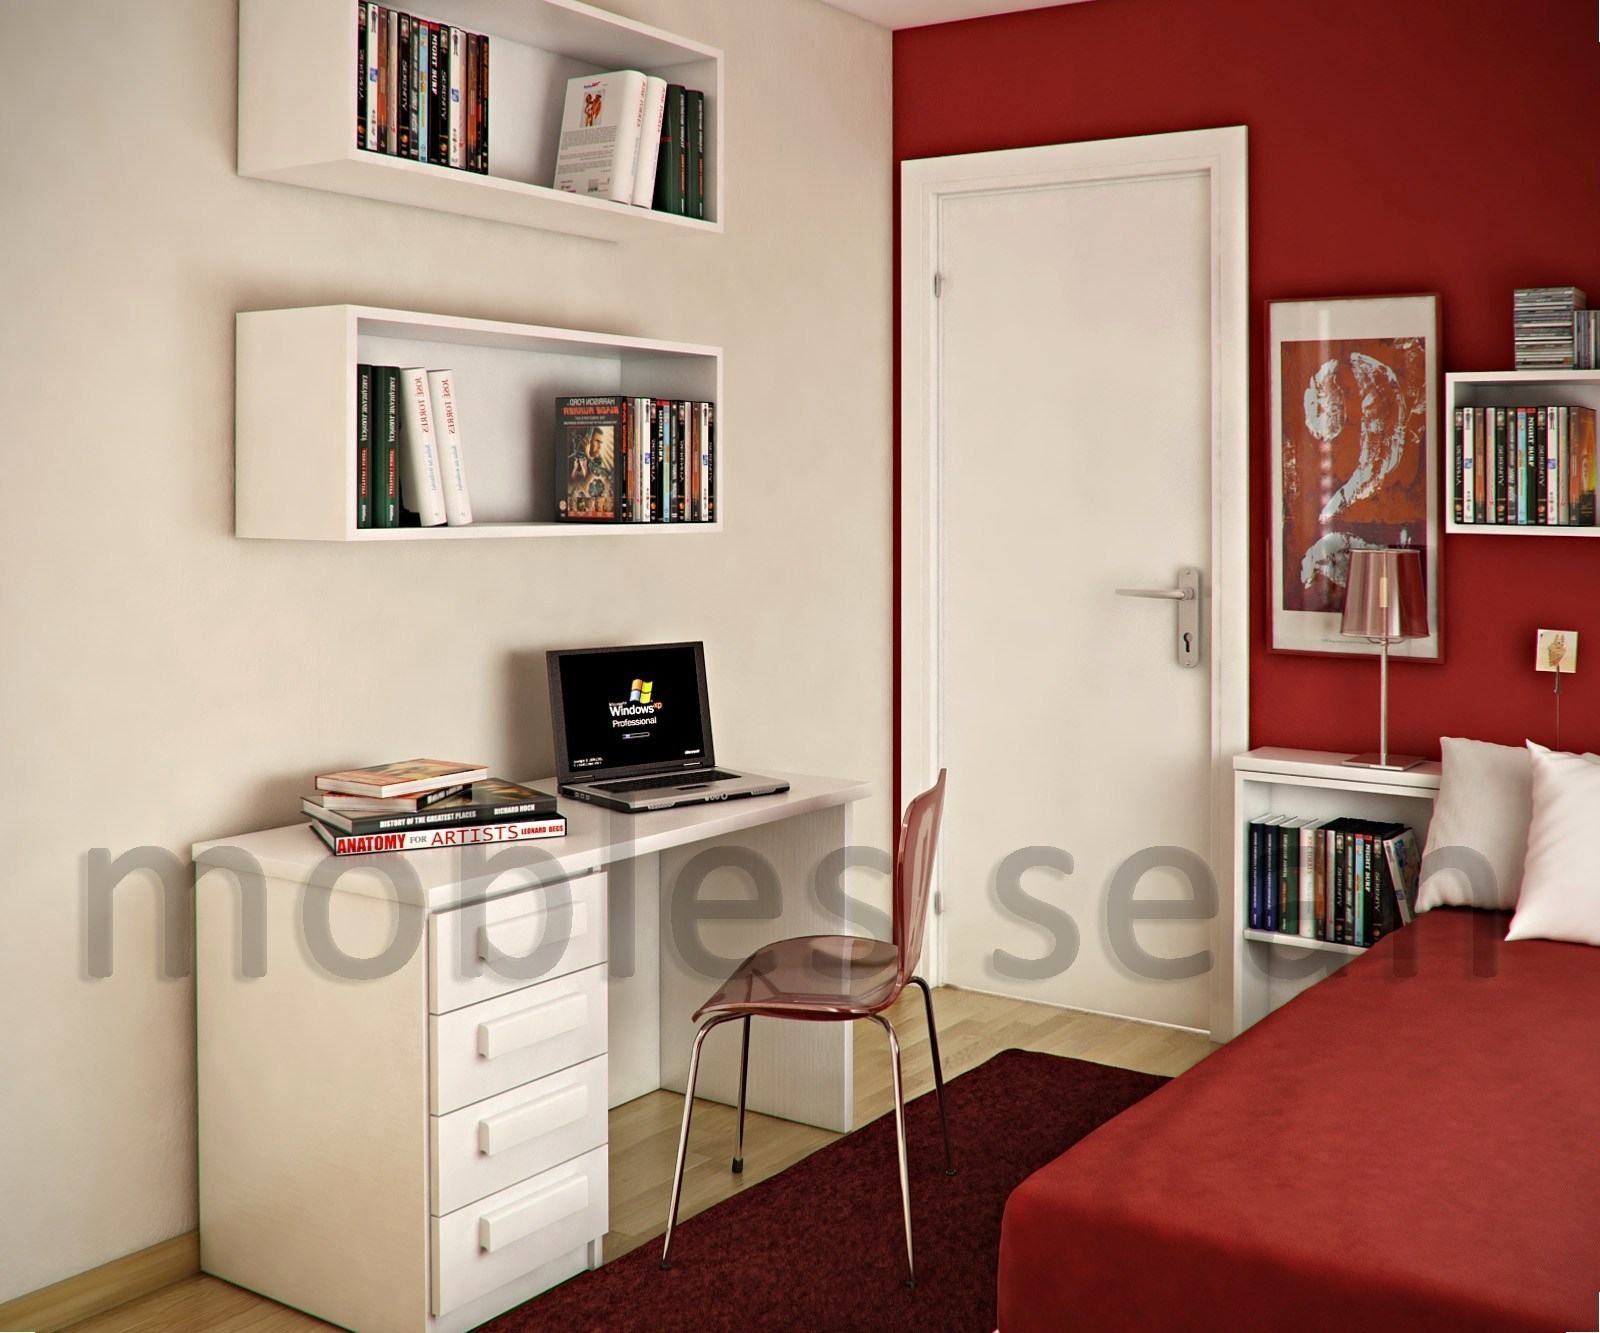 Bedroom Layout Ideas For Square Rooms Design Sofa S